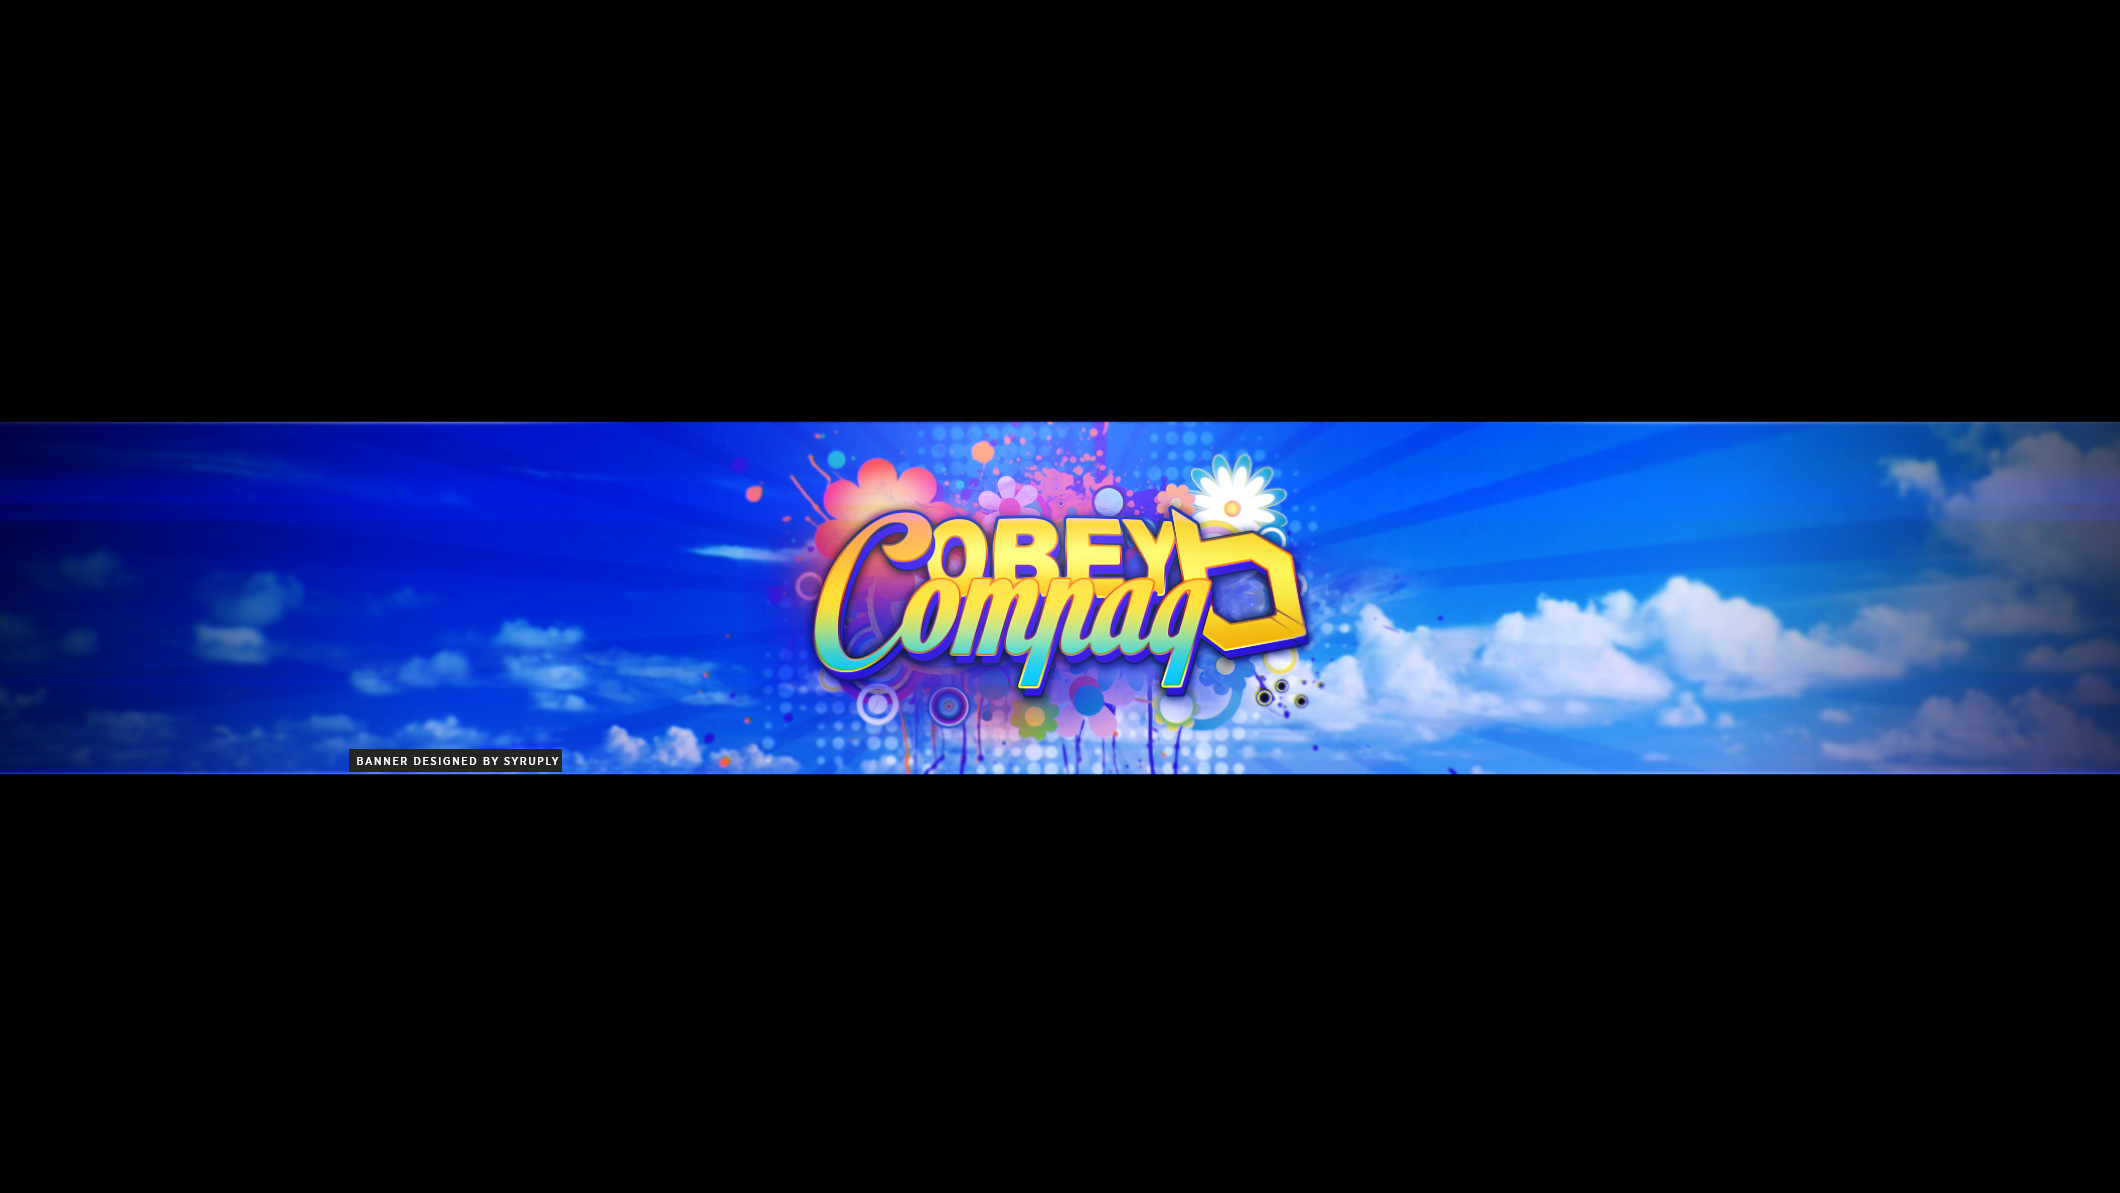 Obey Compaq YouTube Banner by Syruply Obey Compaq YouTube Banner by Syruply